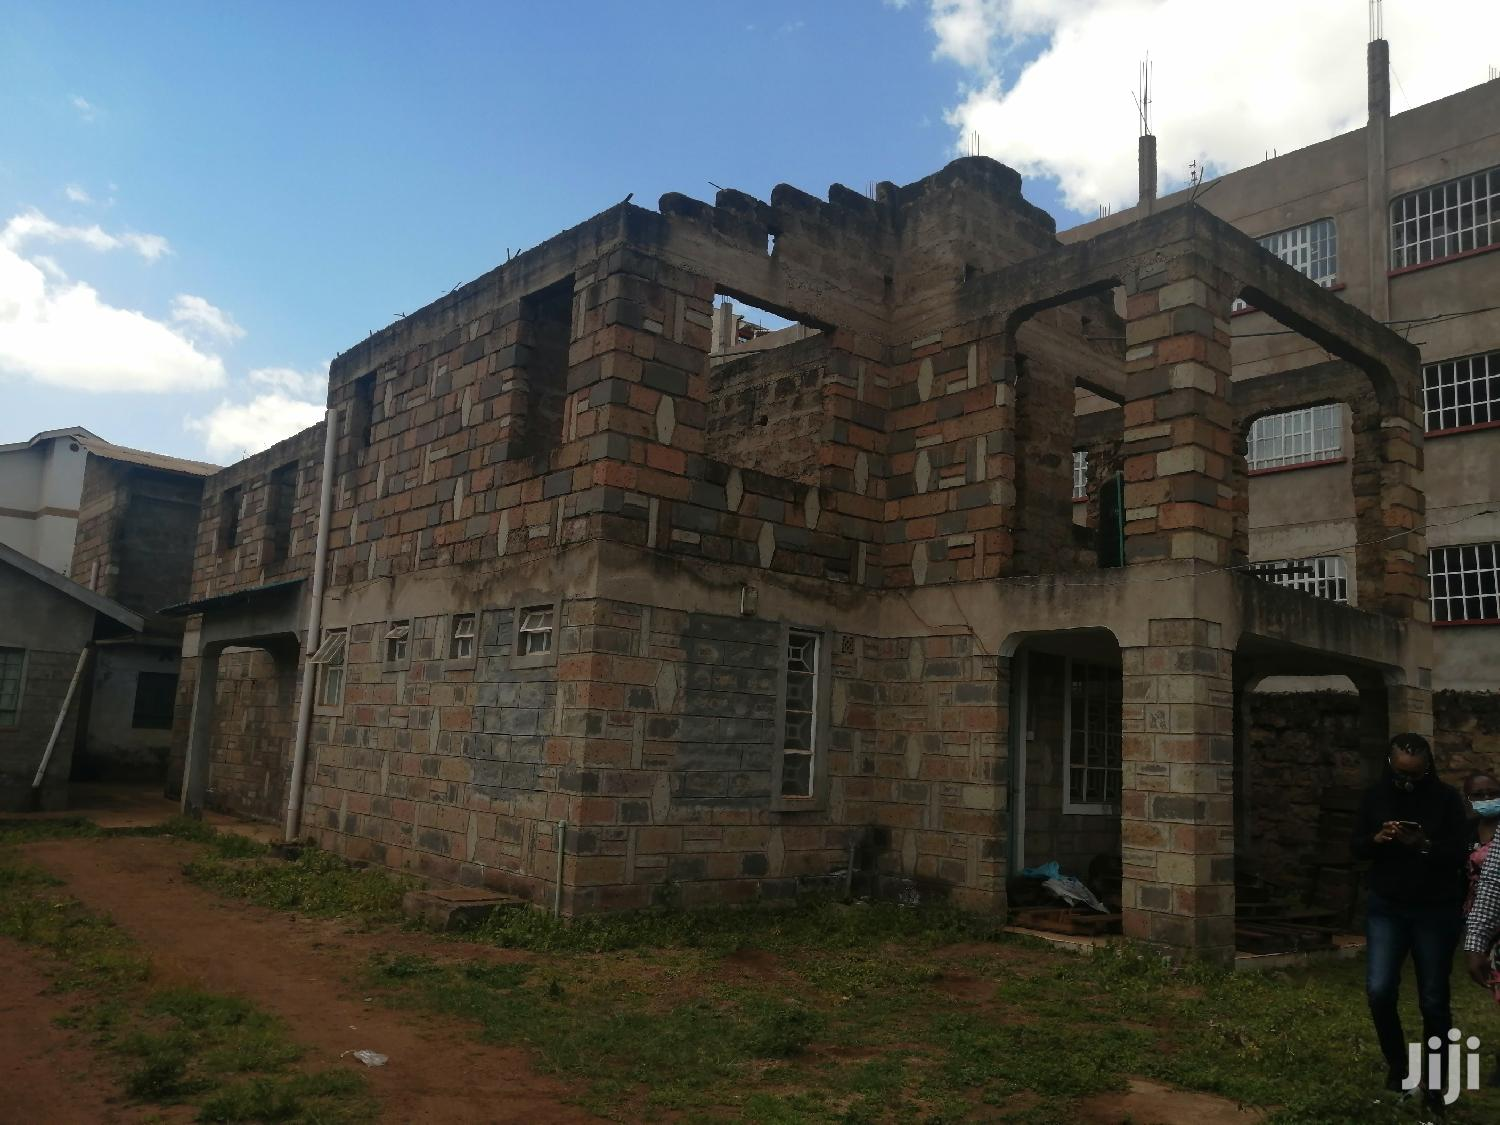 Thika Section 9 Unfinished House 4 Sale | Commercial Property For Sale for sale in Thika, Kiambu, Kenya